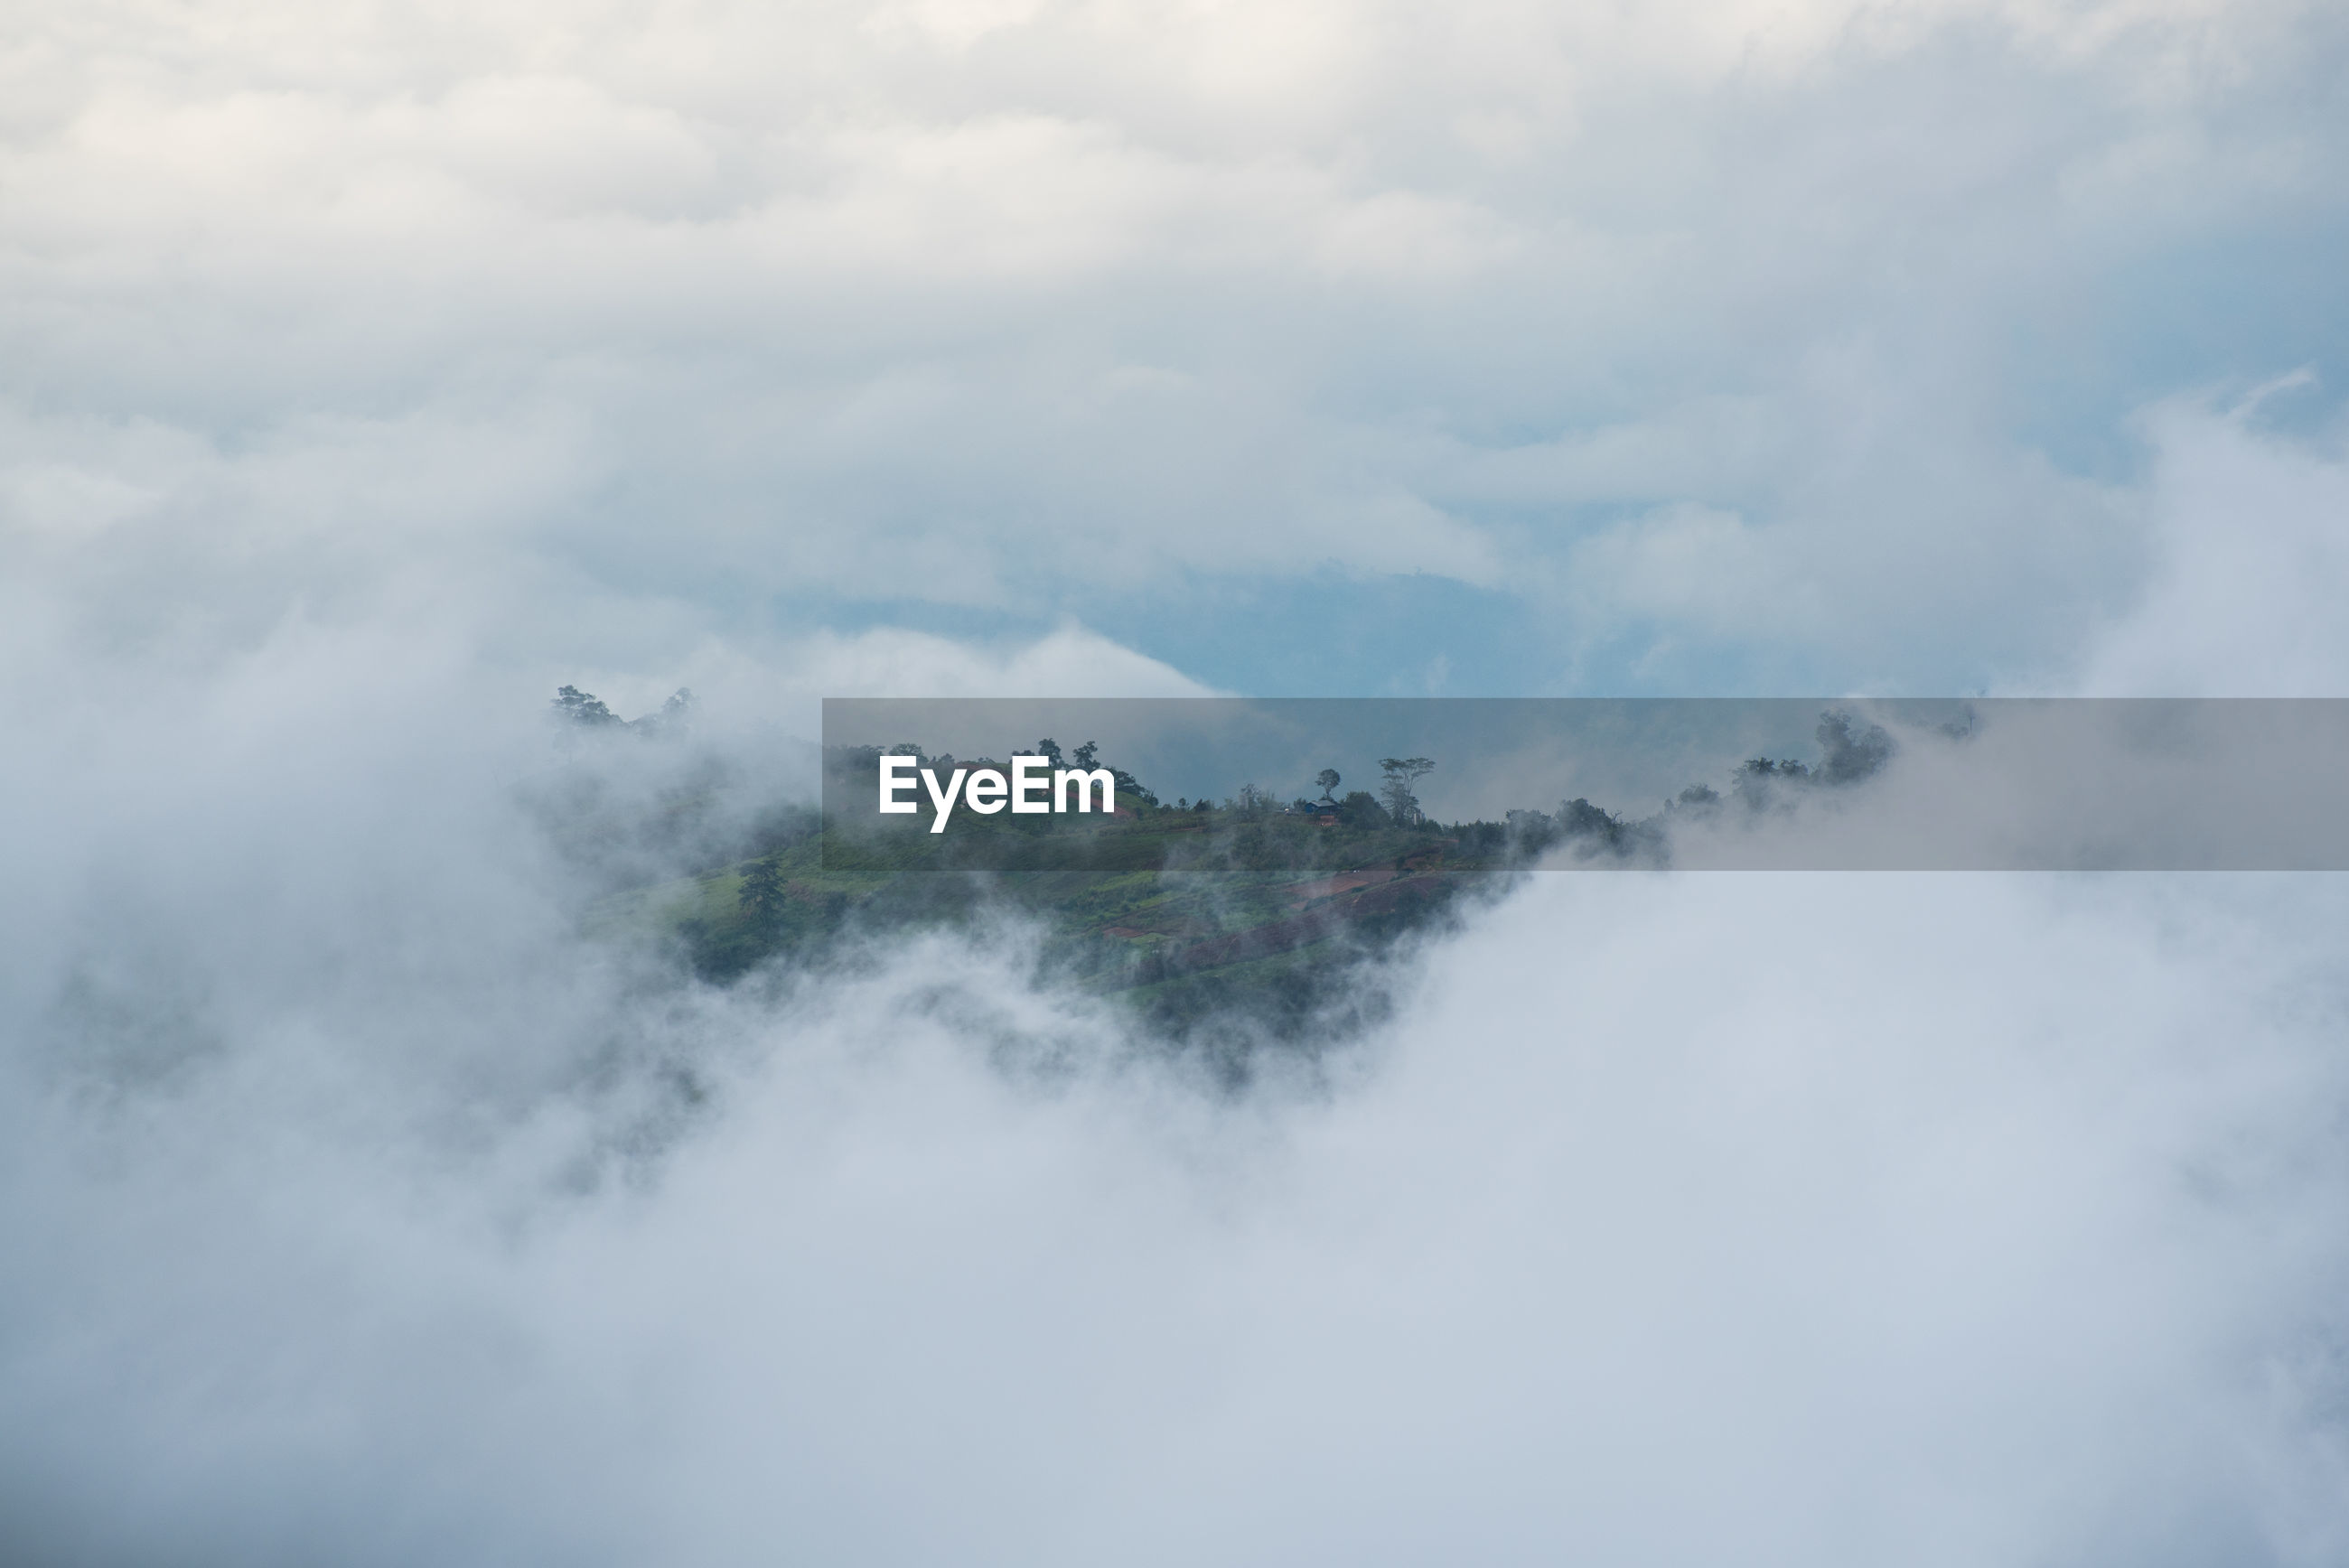 Clouds covering mountains against sky